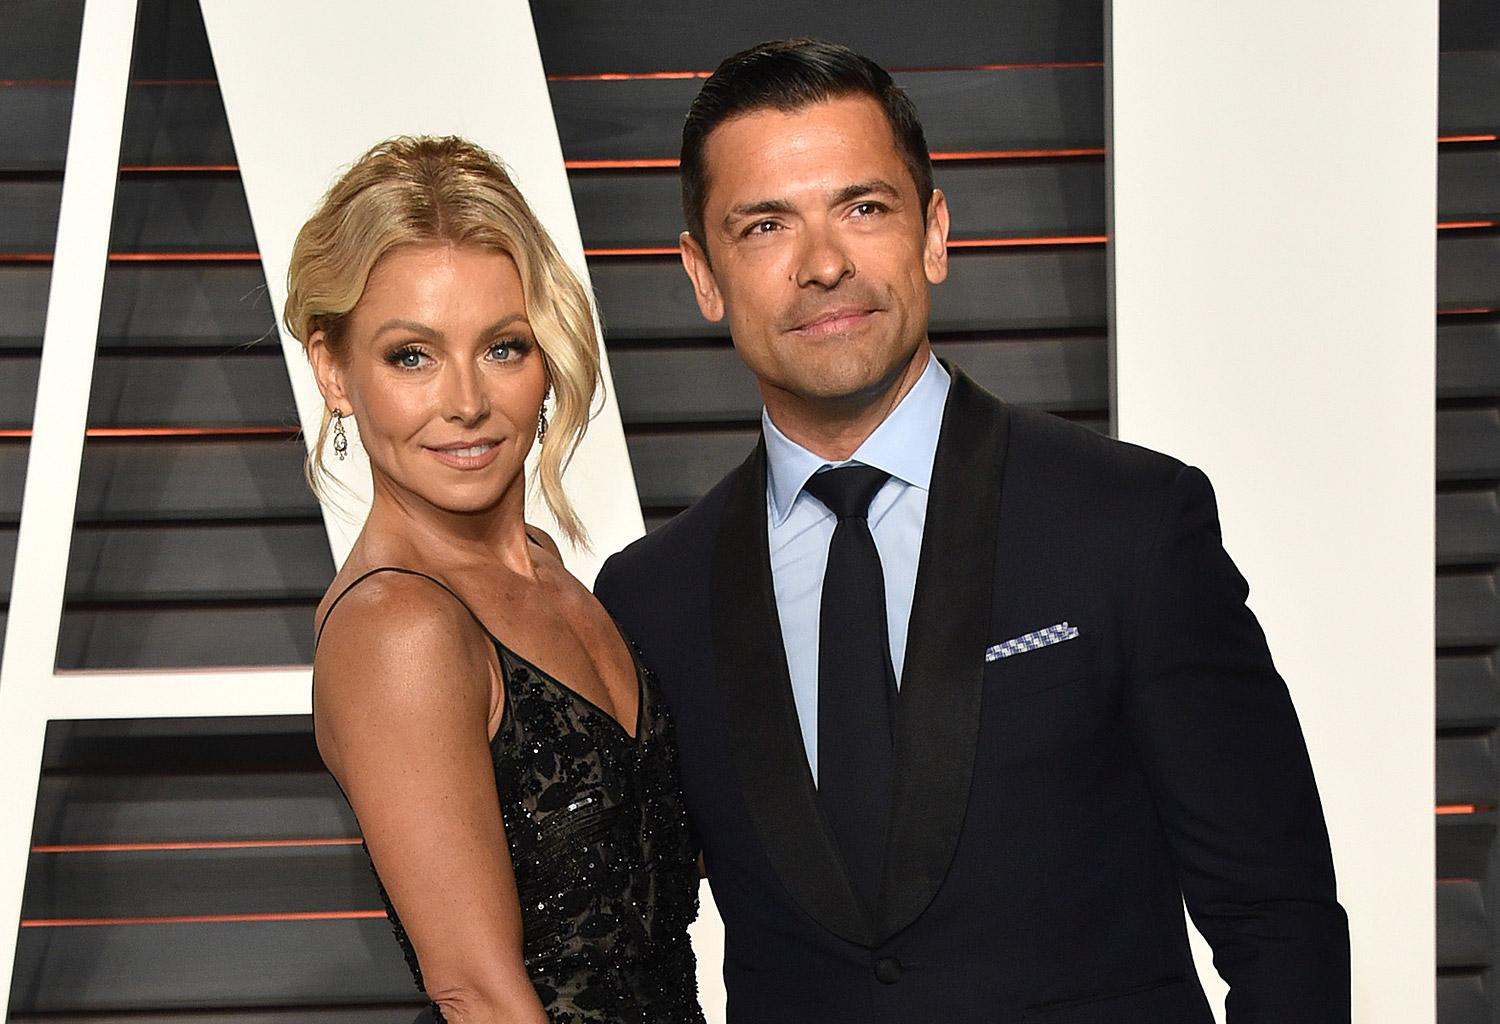 Kelly Ripa Wishes 'Finest Man' Mark Consuelos A Happy Birthday With Sweet Message